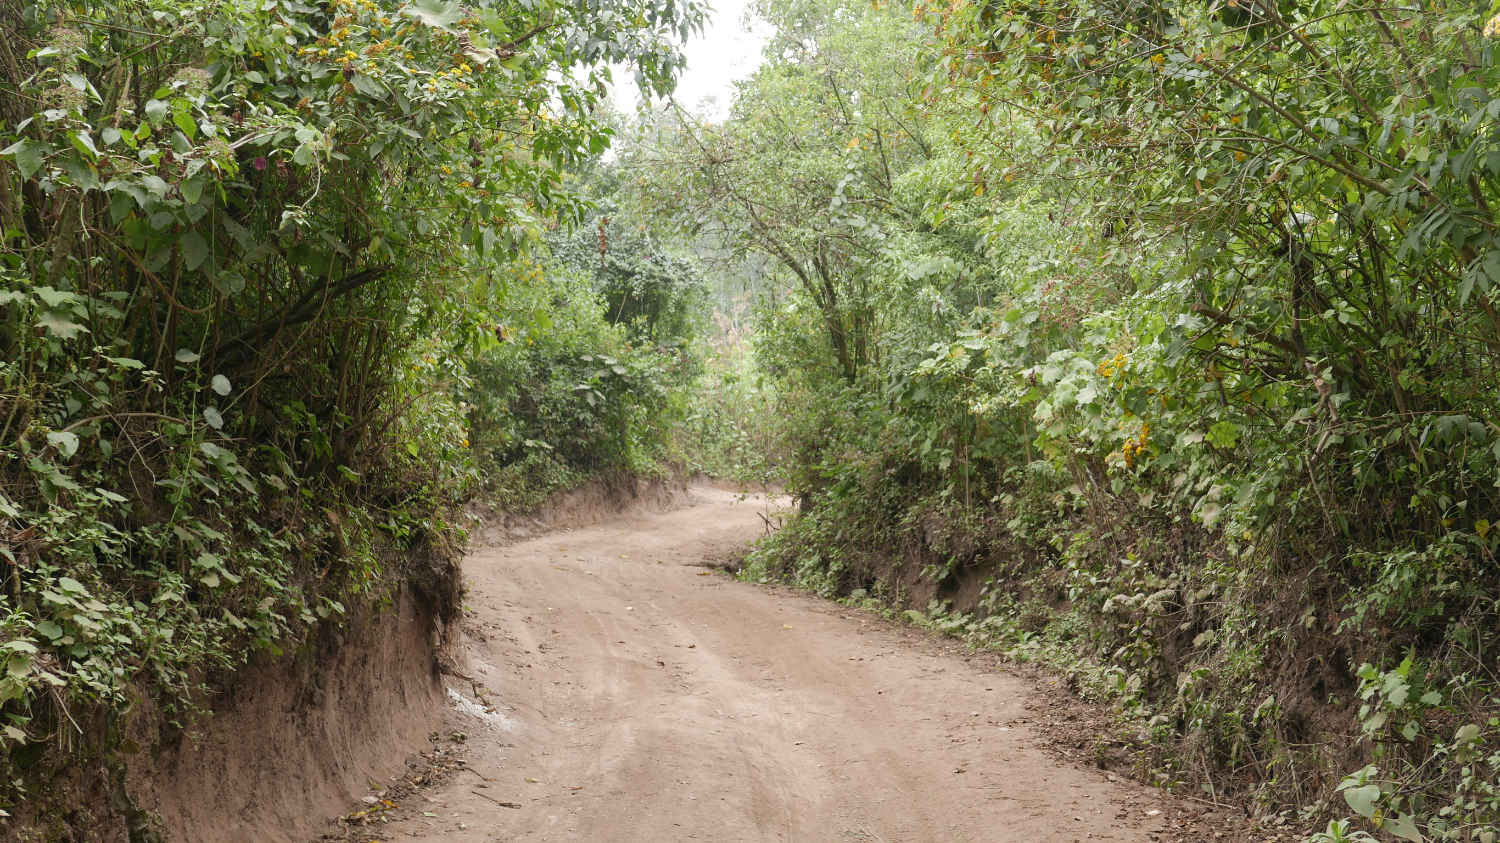 The second part of the ascent to Lake Chicabal is a dirt road